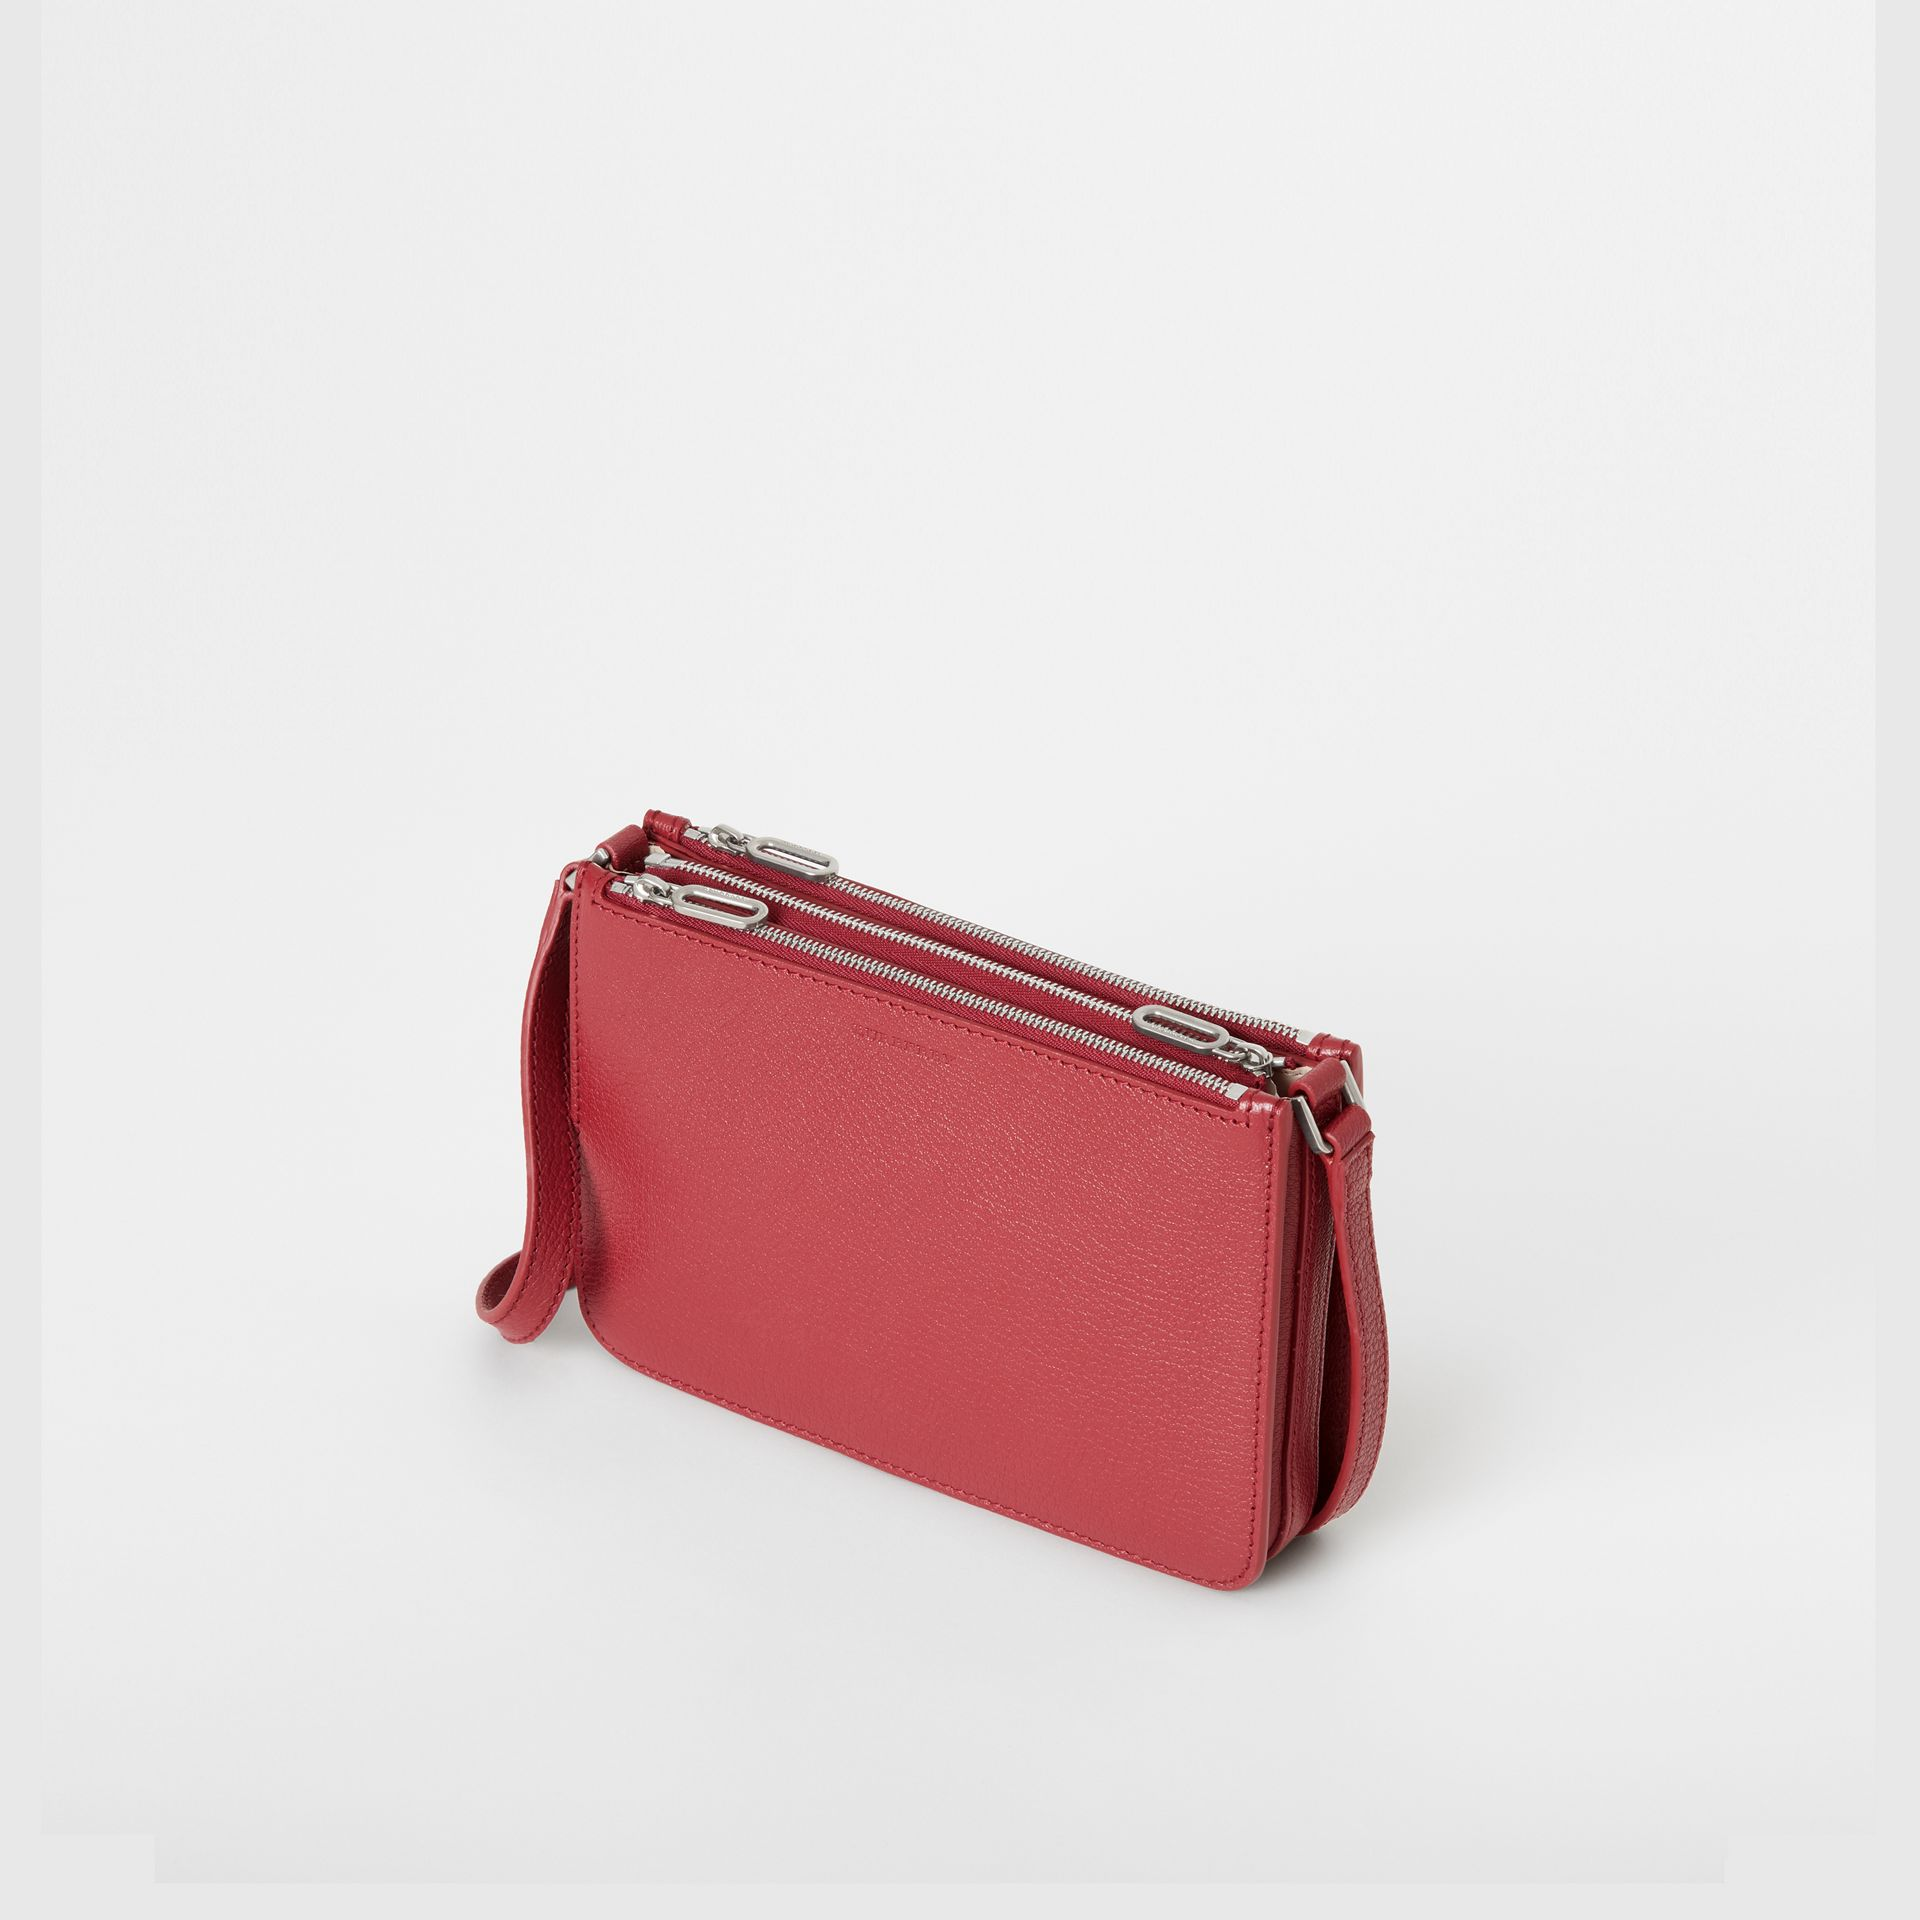 Triple Zip Grainy Leather Crossbody Bag in Crimson - Women | Burberry - gallery image 3